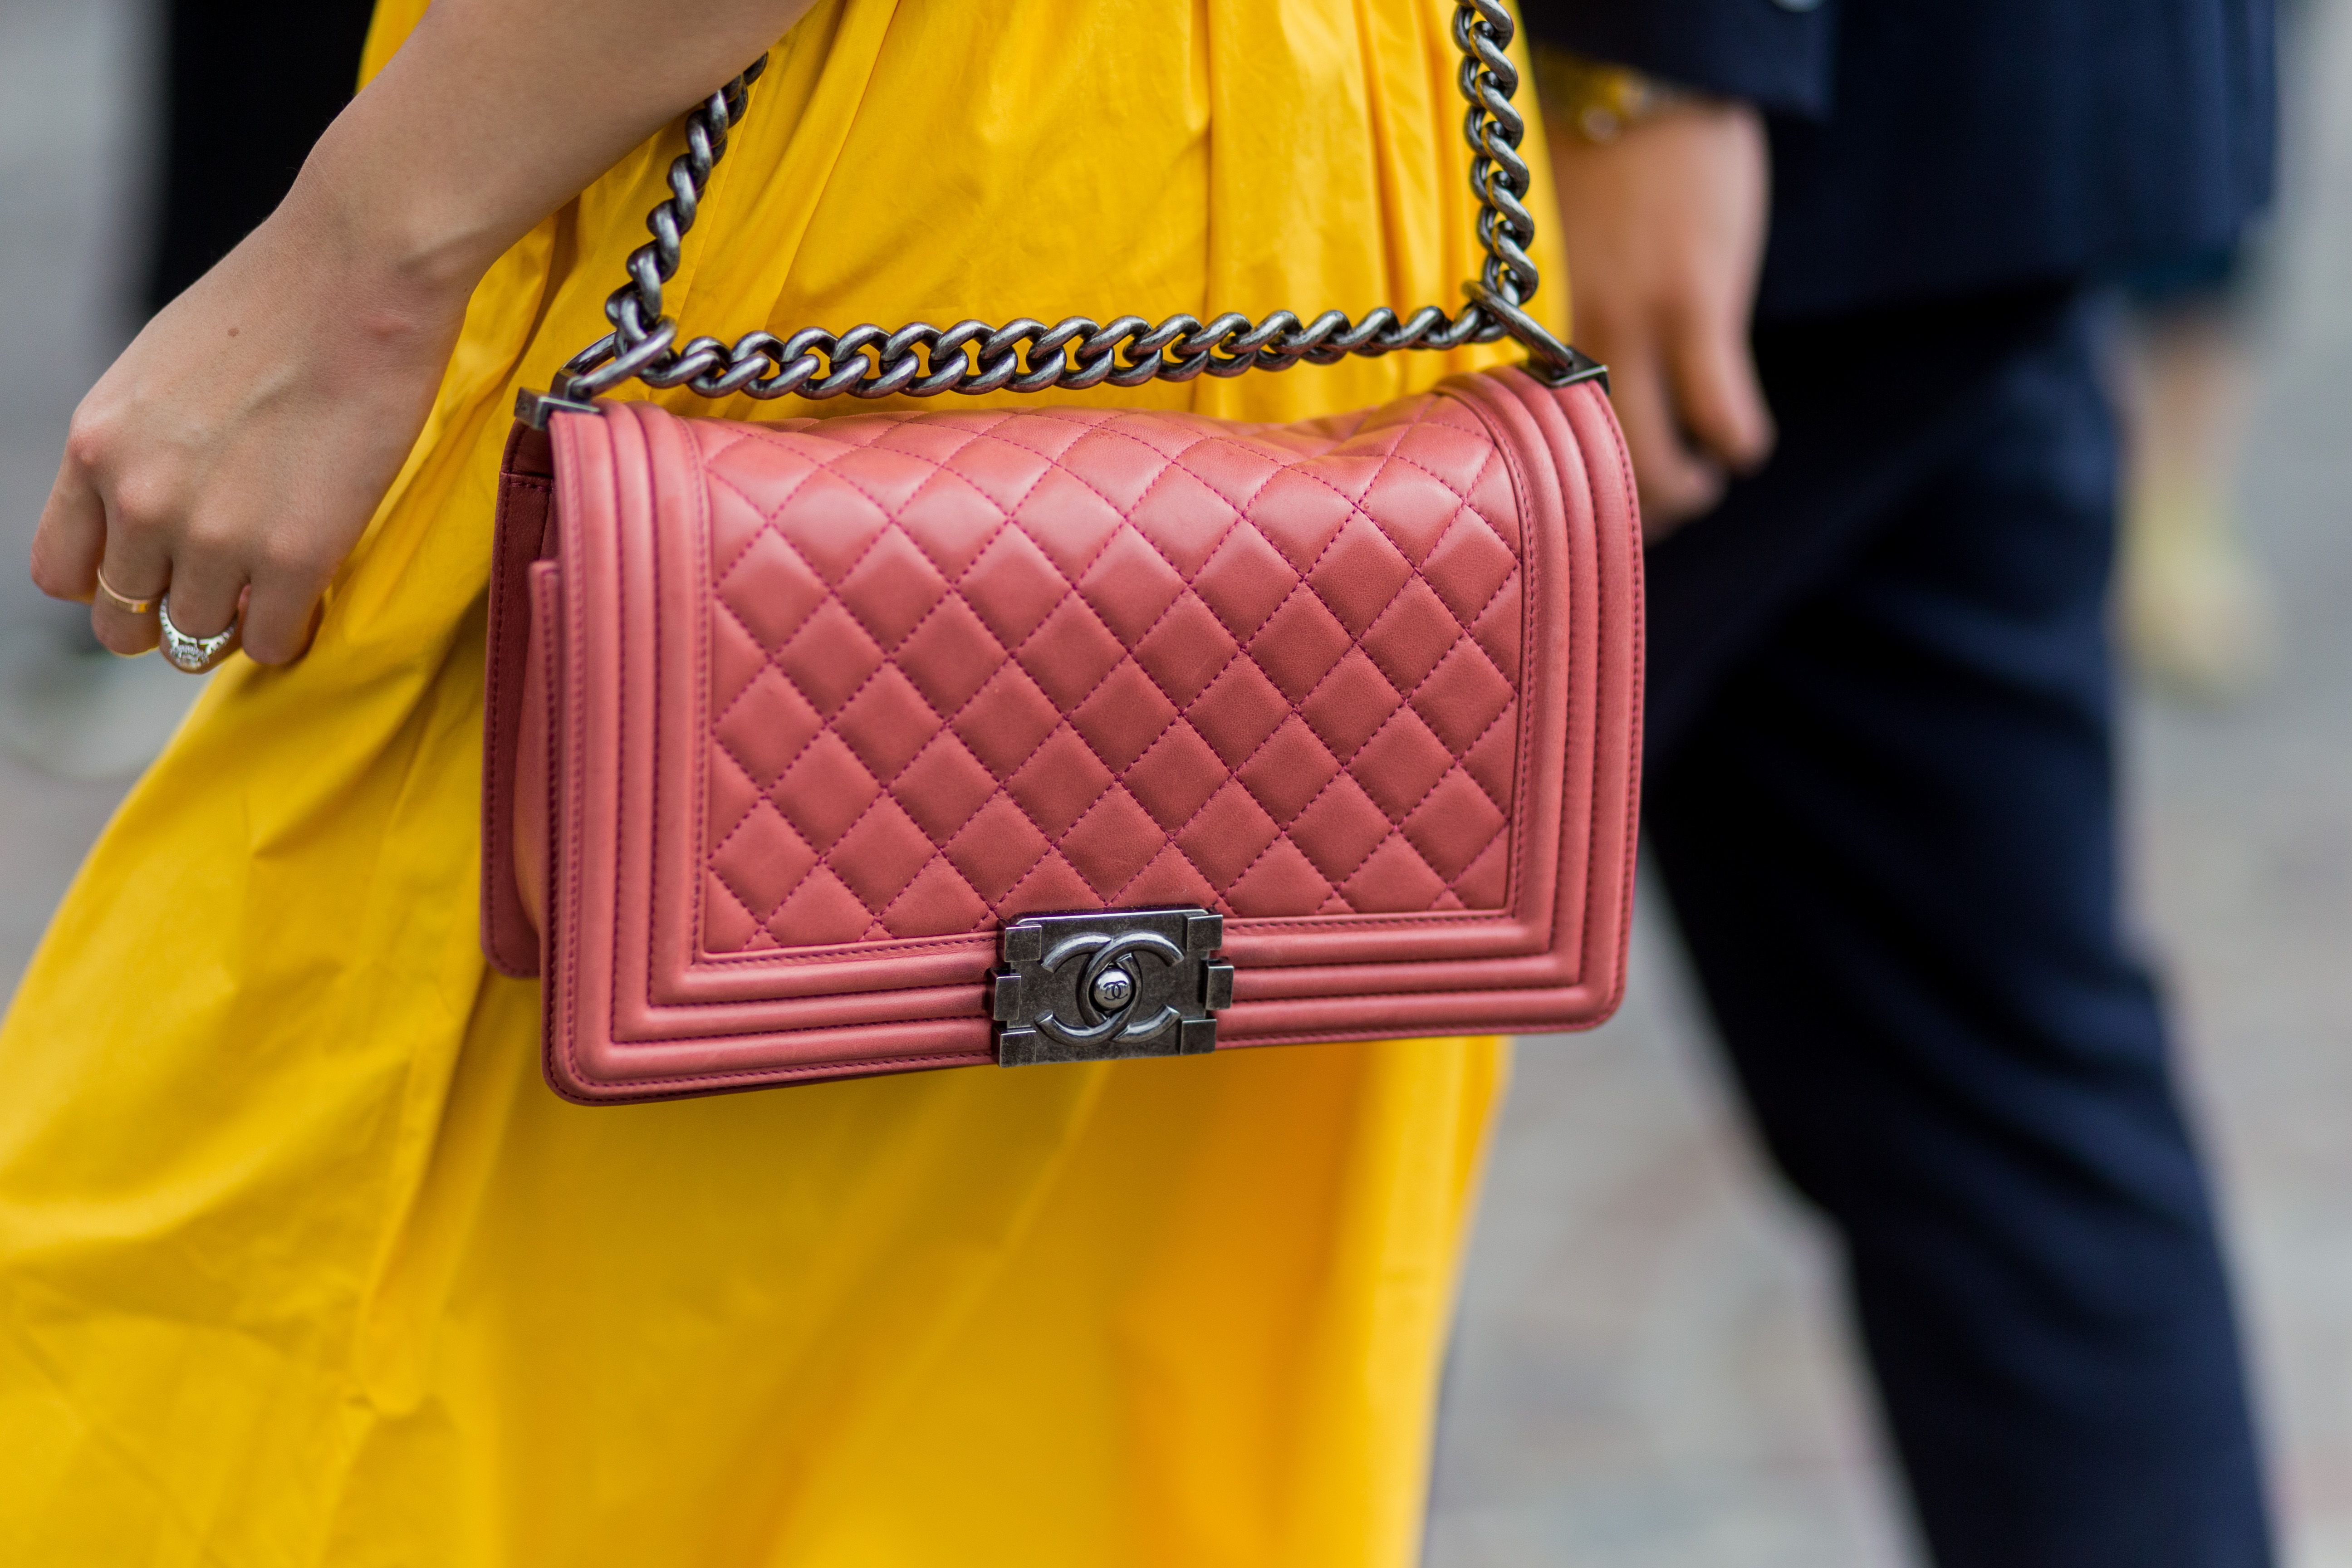 4a17d04c838a4d Chanel Handbags Skyrocket in Value - Investment Value of Chanel Purses